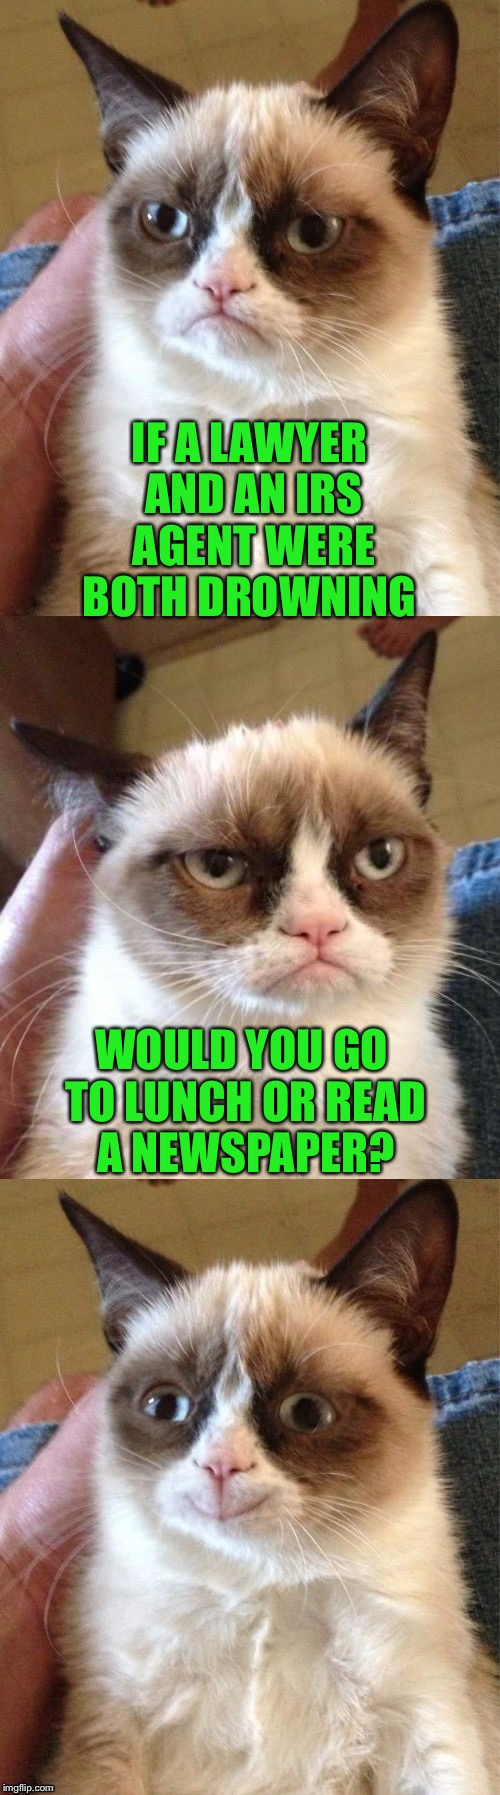 Bad Pun Grumpy Cat | IF A LAWYER AND AN IRS AGENT WERE BOTH DROWNING WOULD YOU GO TO LUNCH OR READ A NEWSPAPER? | image tagged in bad pun grumpy cat | made w/ Imgflip meme maker